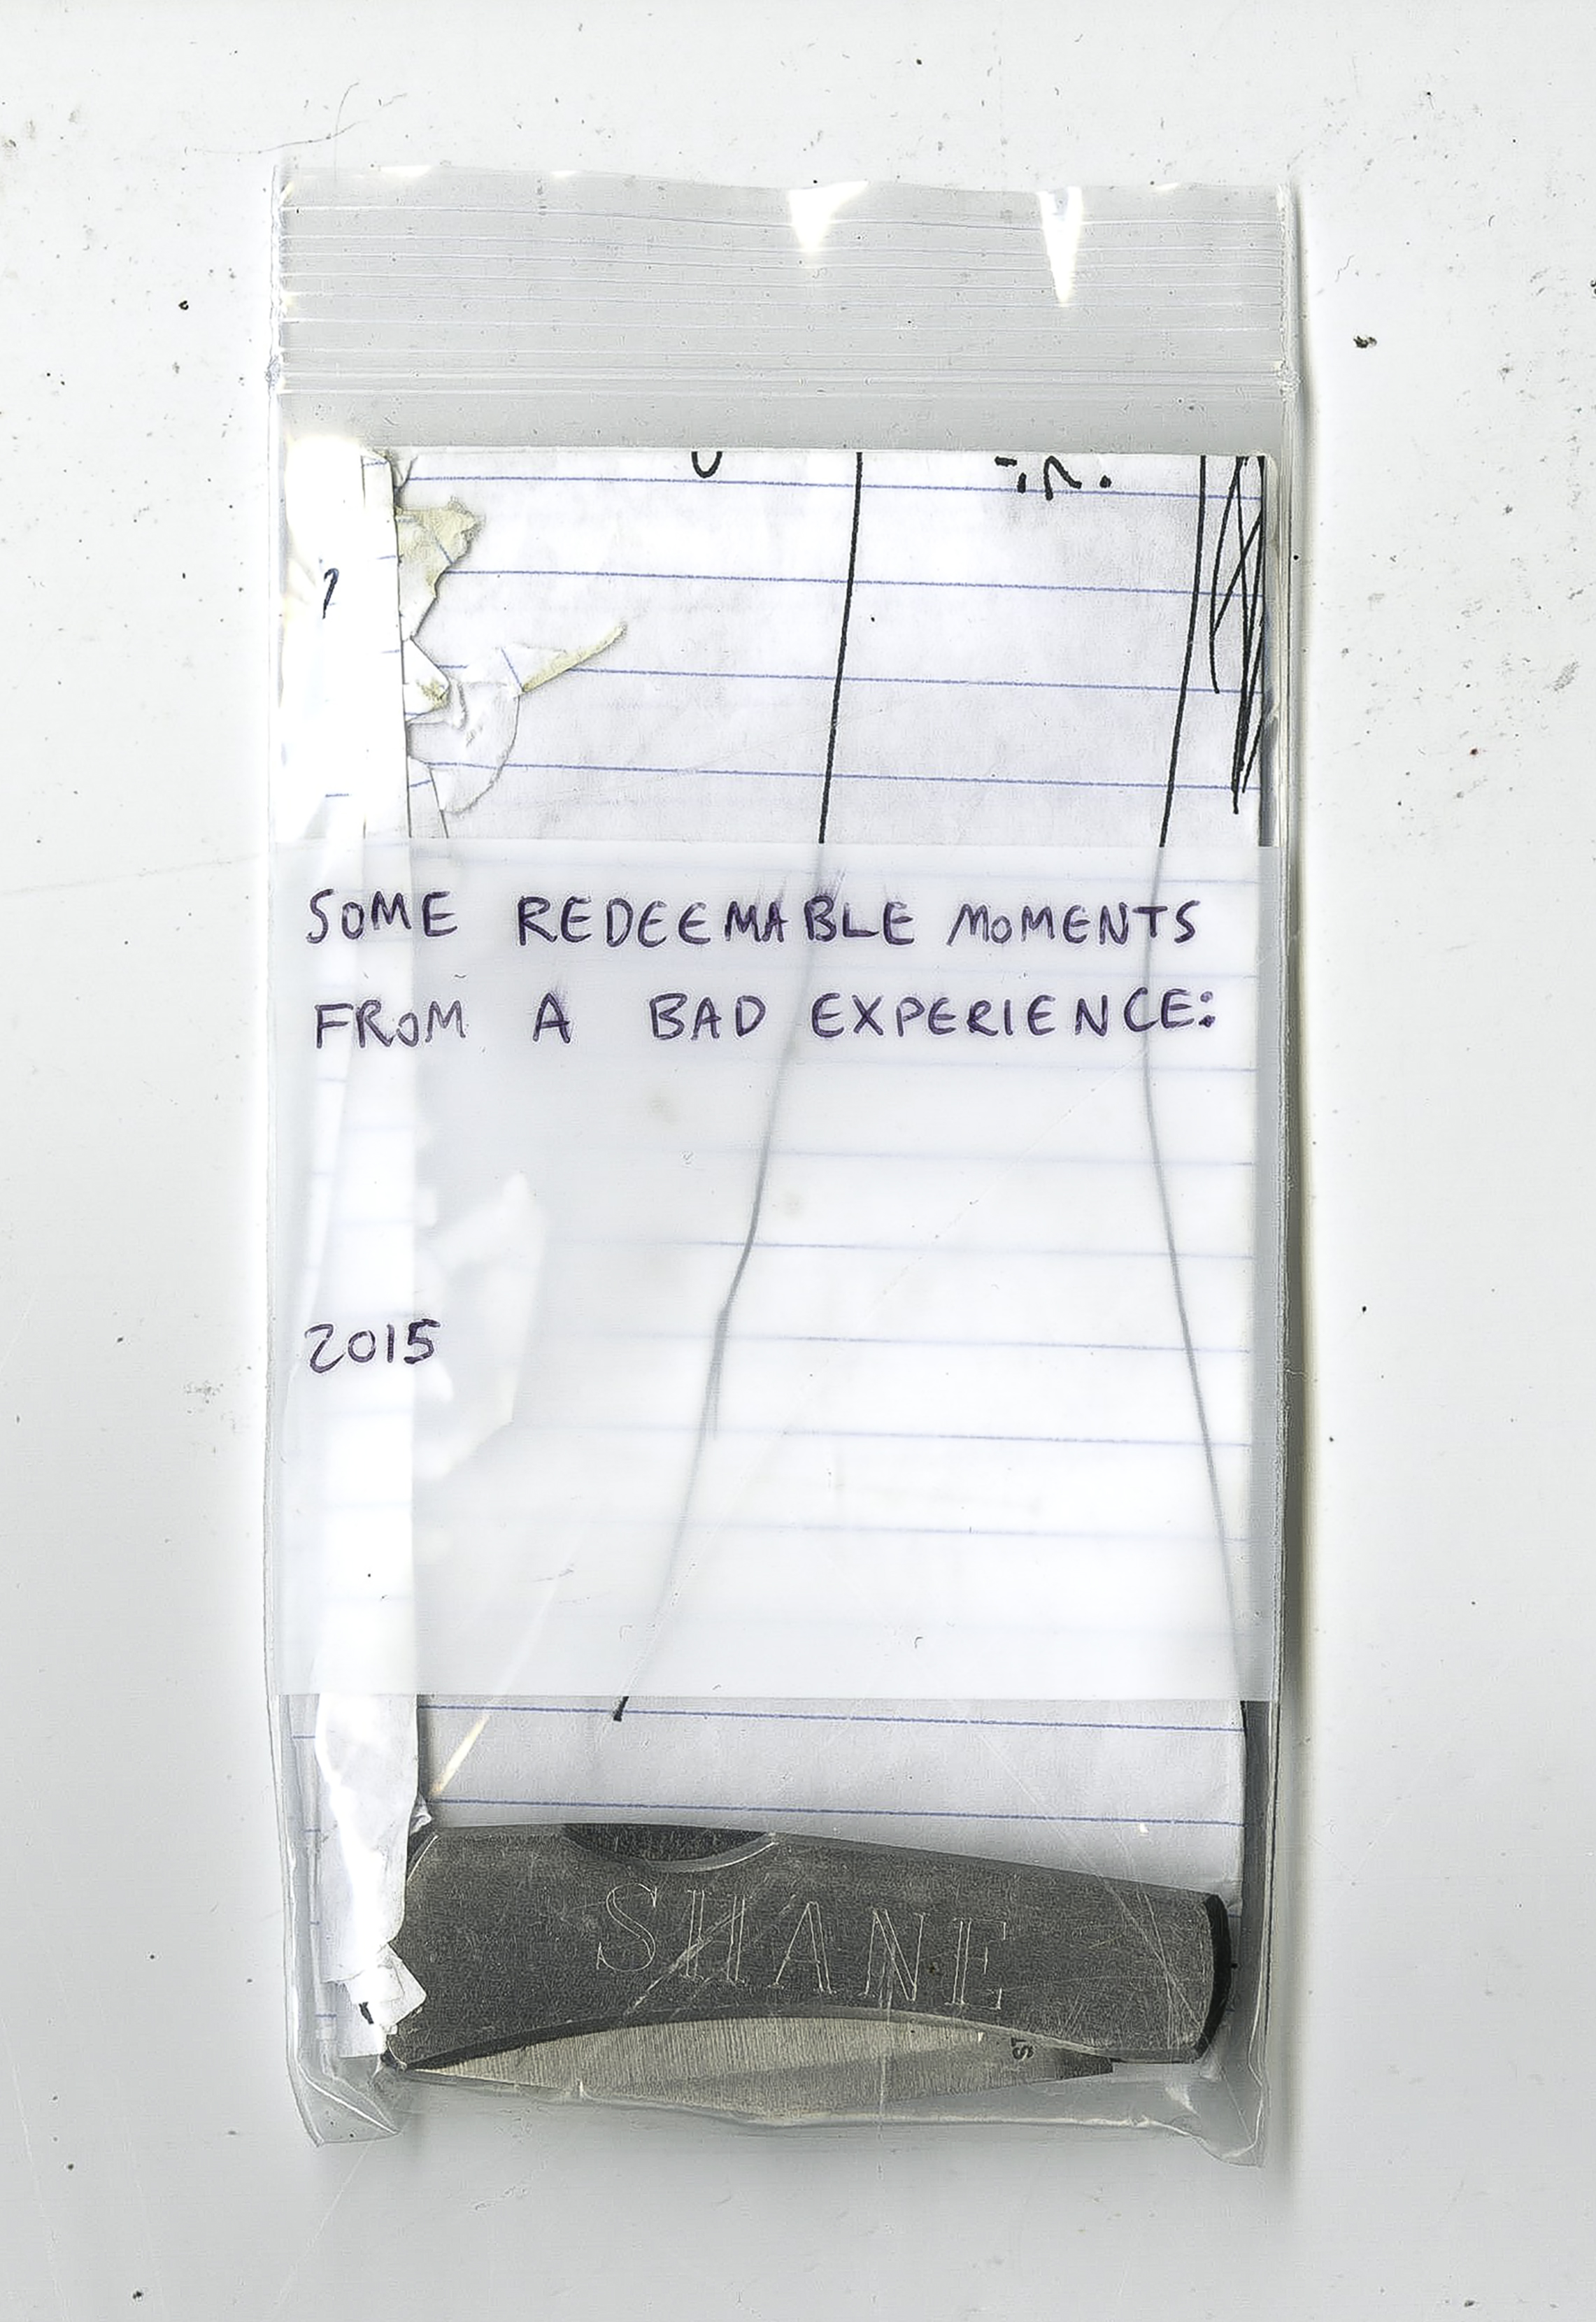 """Some redeemable moments from a bad experience: 2015 , site-specific installation instructions, """"SHANE"""" pocket knife, """"hot"""" item from shower curtain, bag, 2016"""